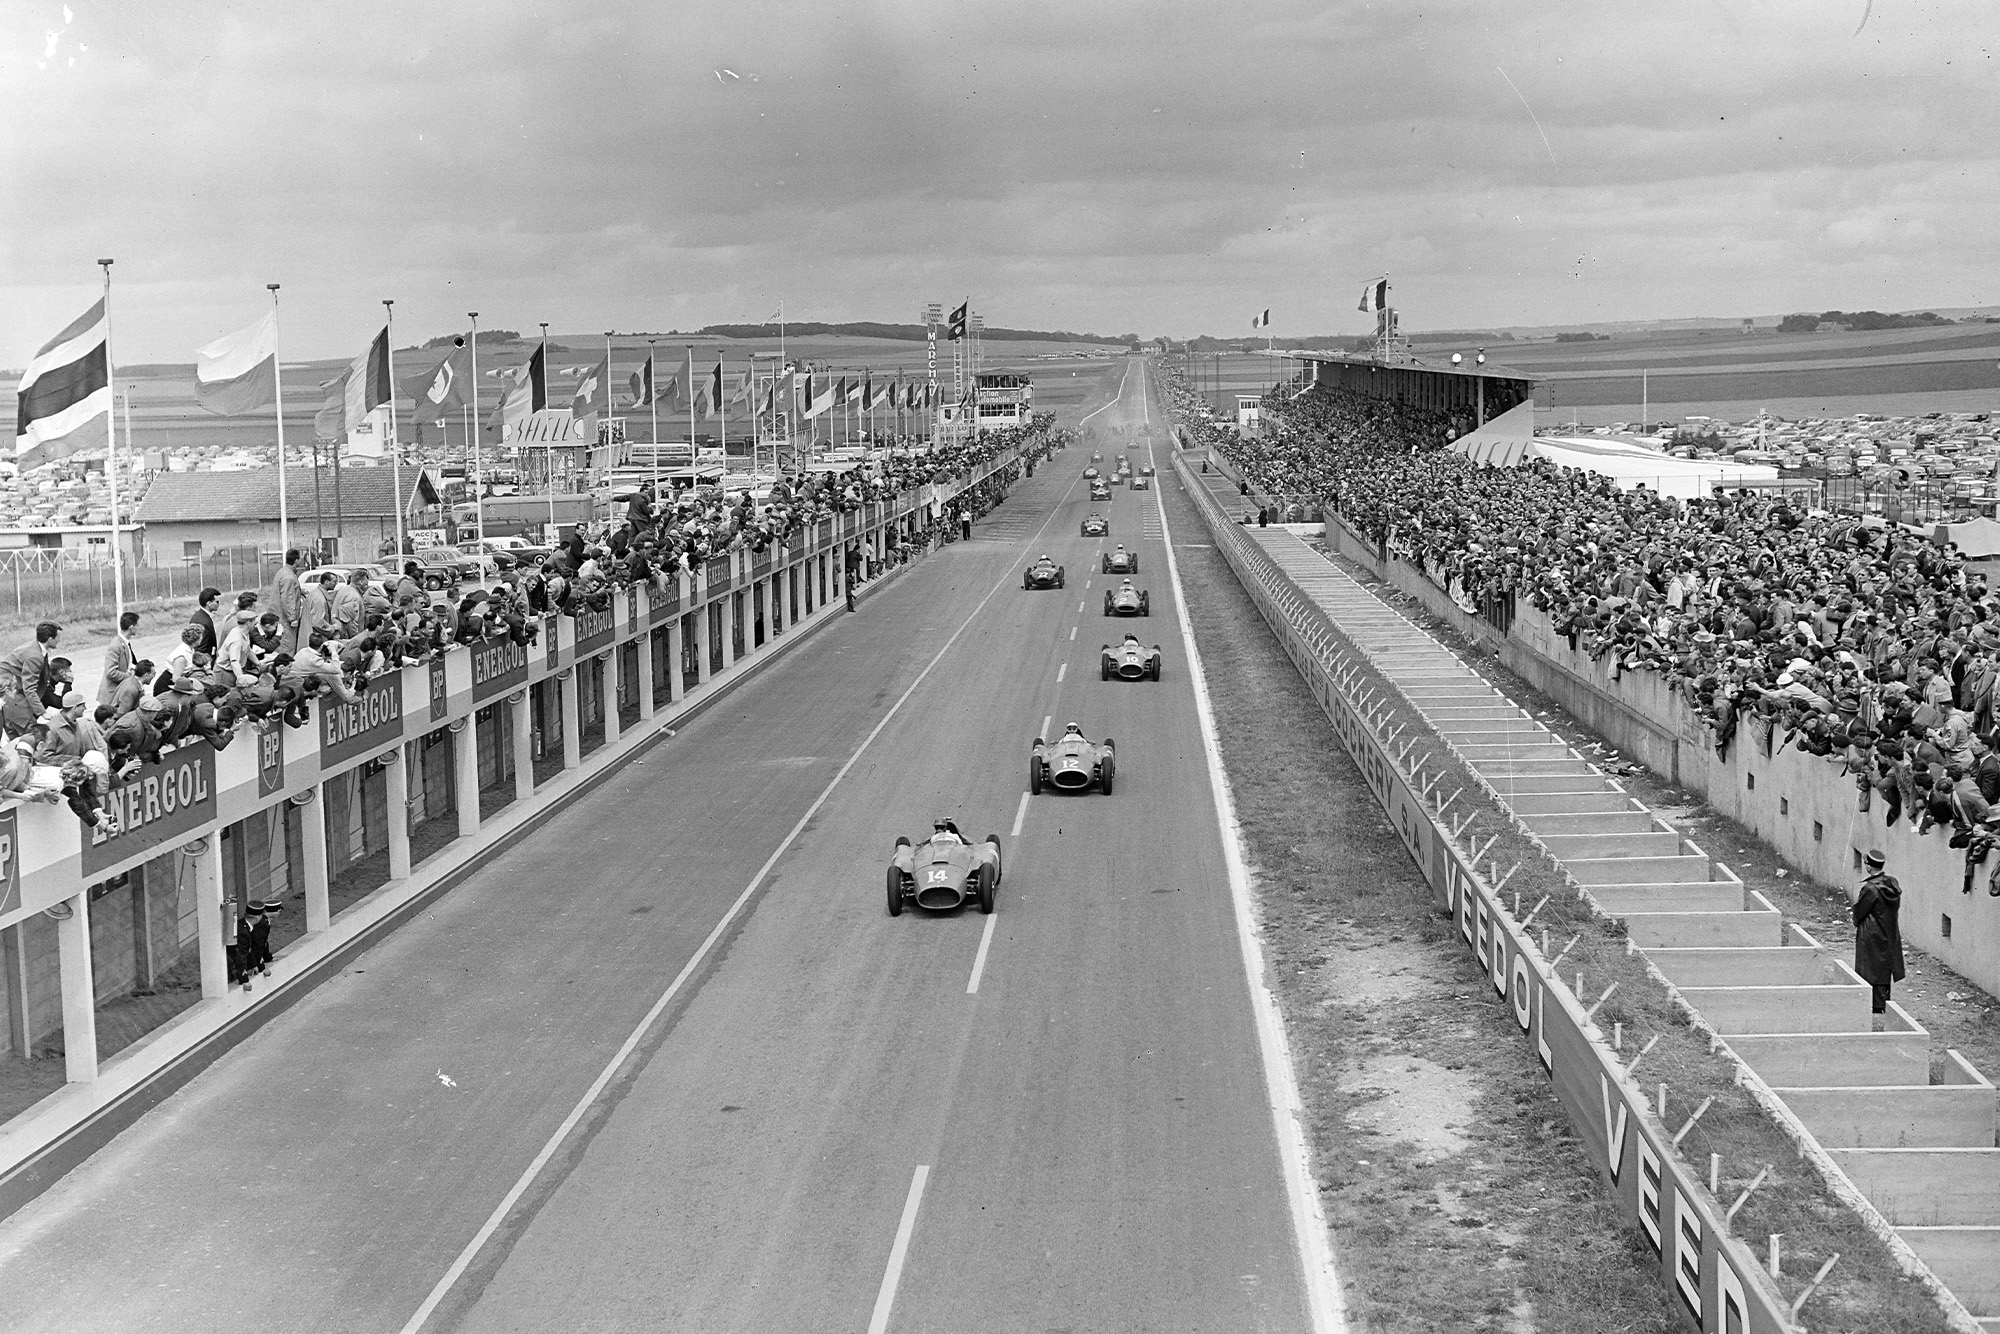 Peter Collins leads at the start